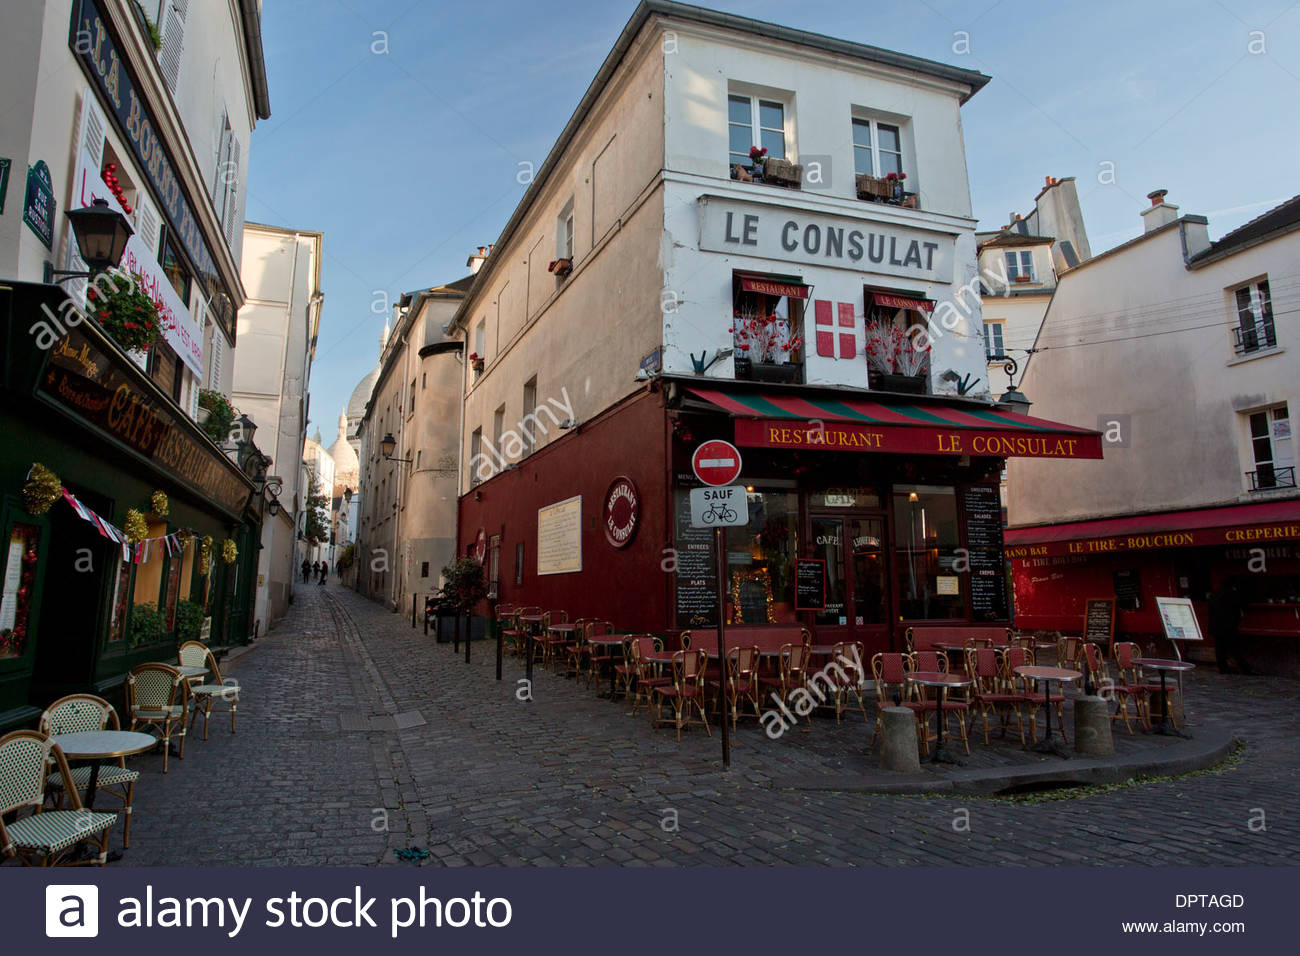 Le consulat cafe and restaurant montmartre paris france for Restaurant le miroir montmartre